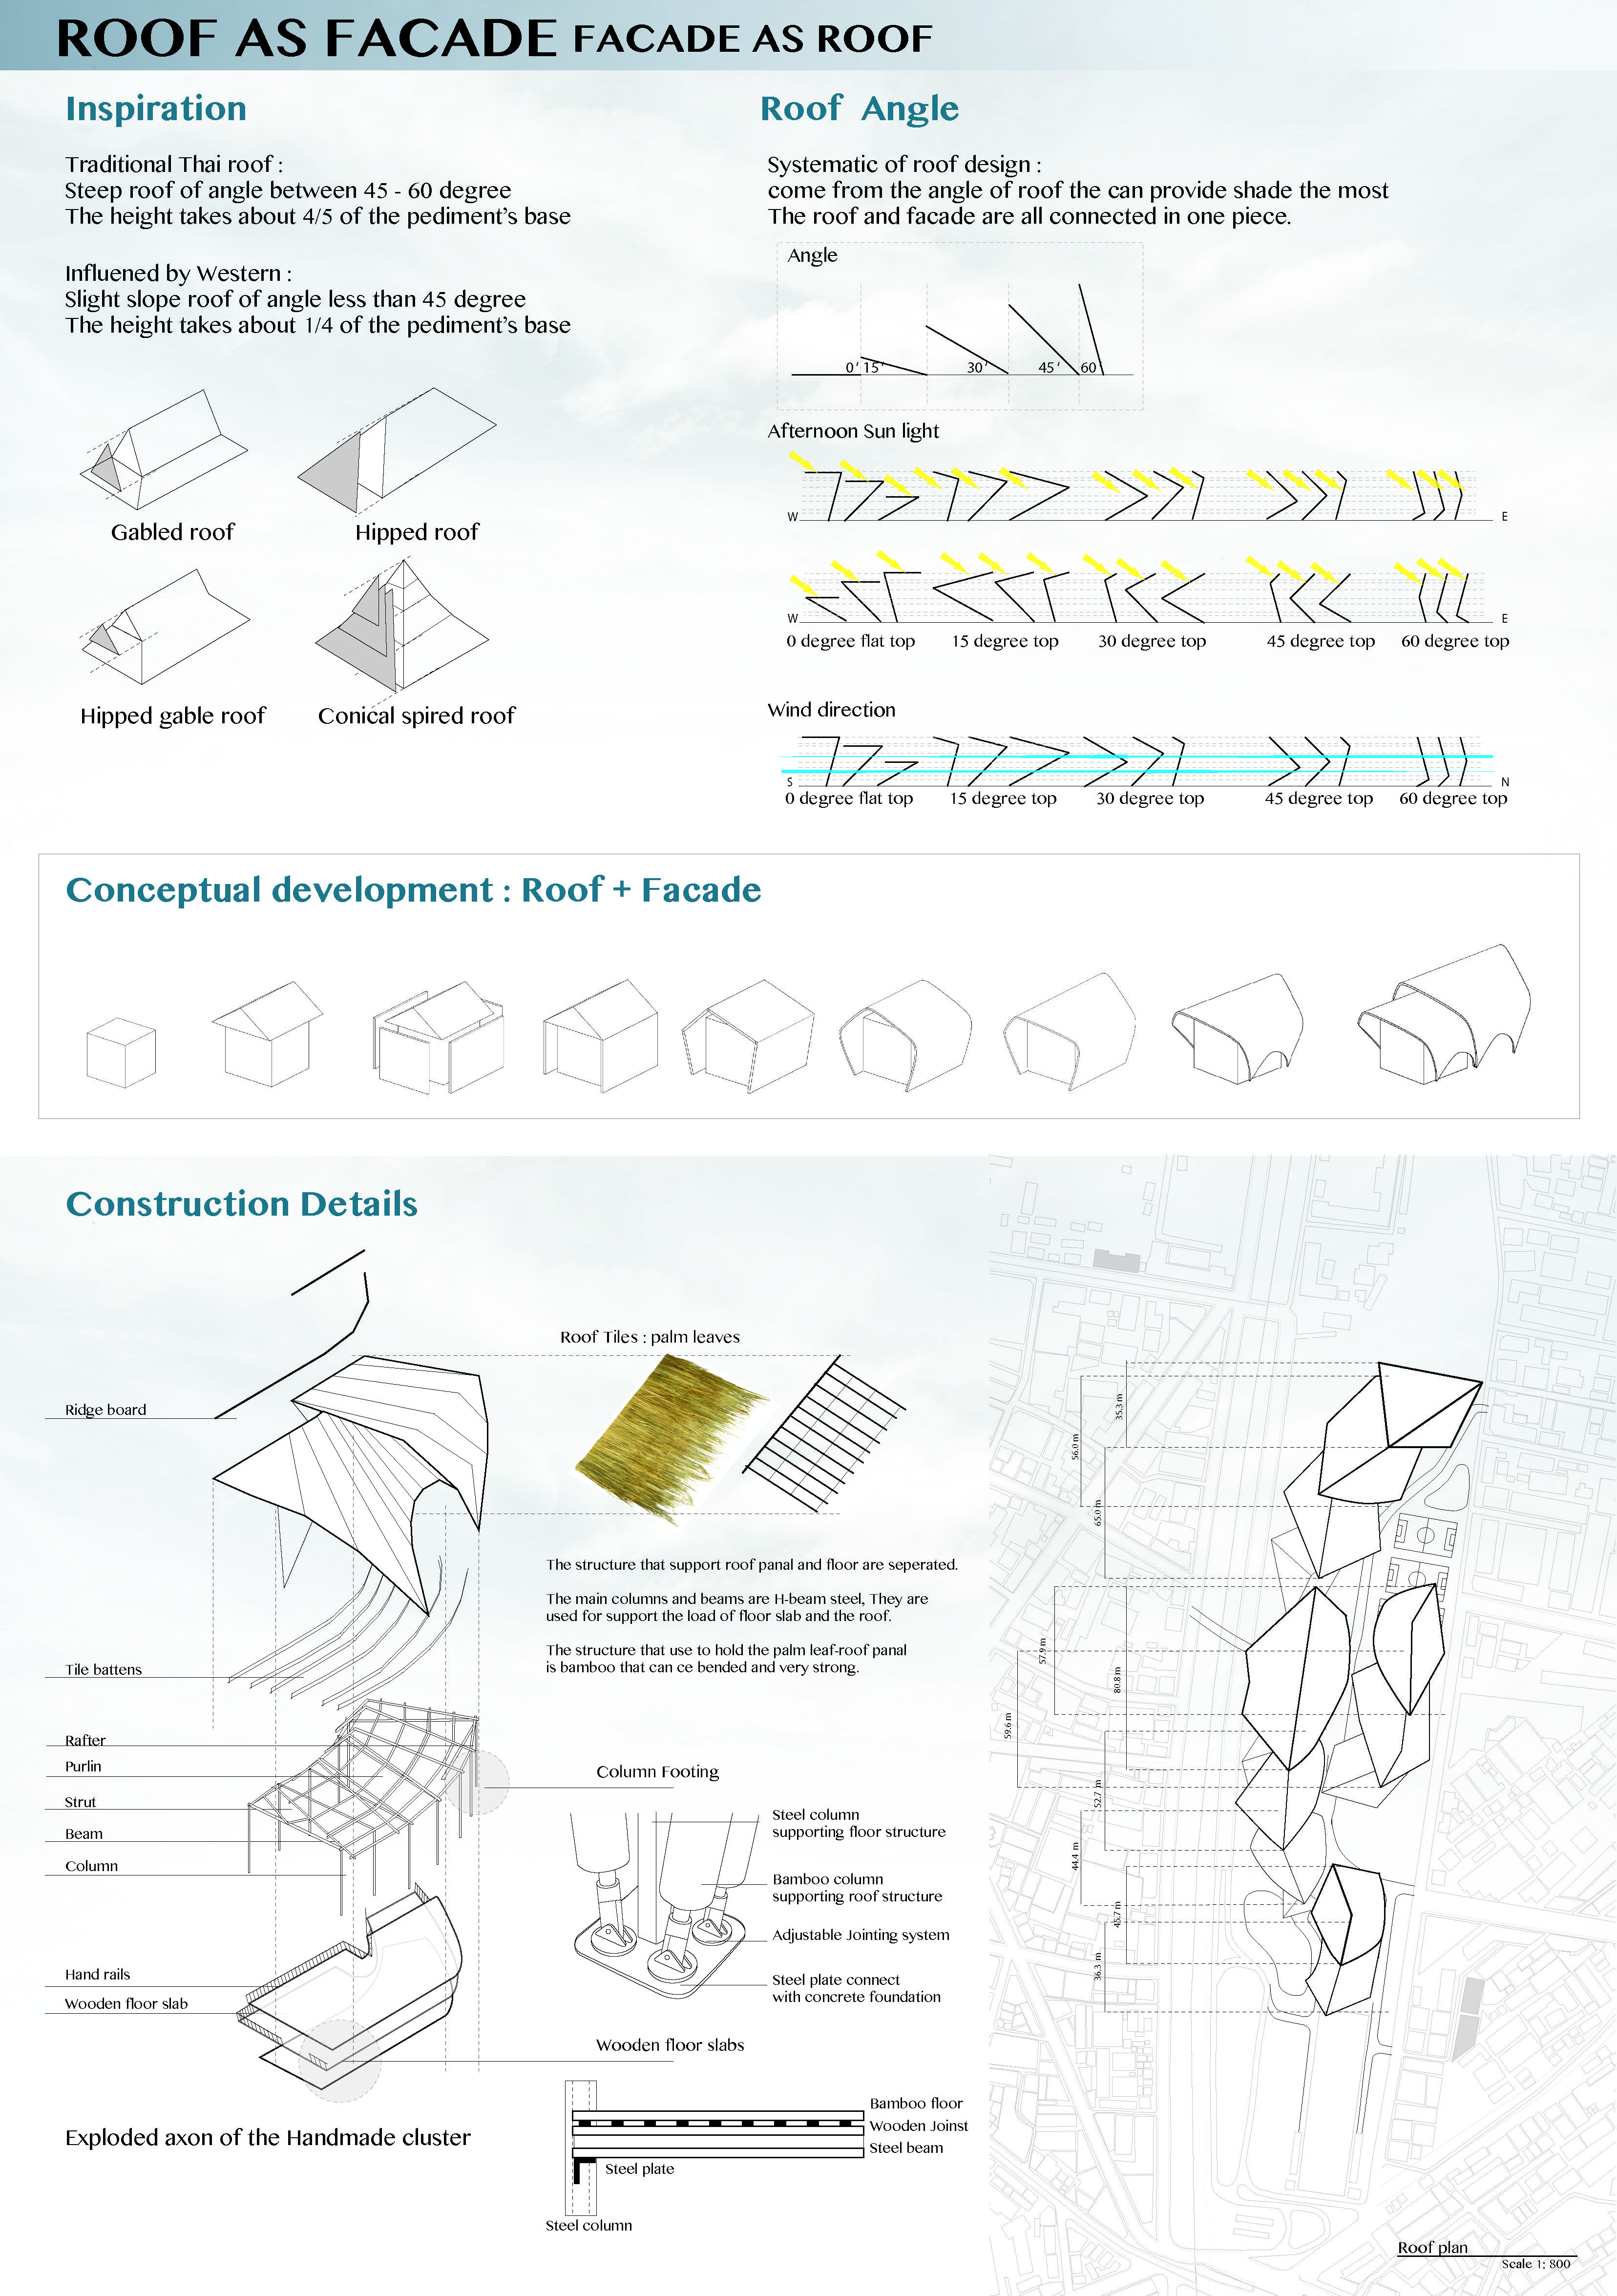 Final Presentation Shell House The Concept Of Roof As